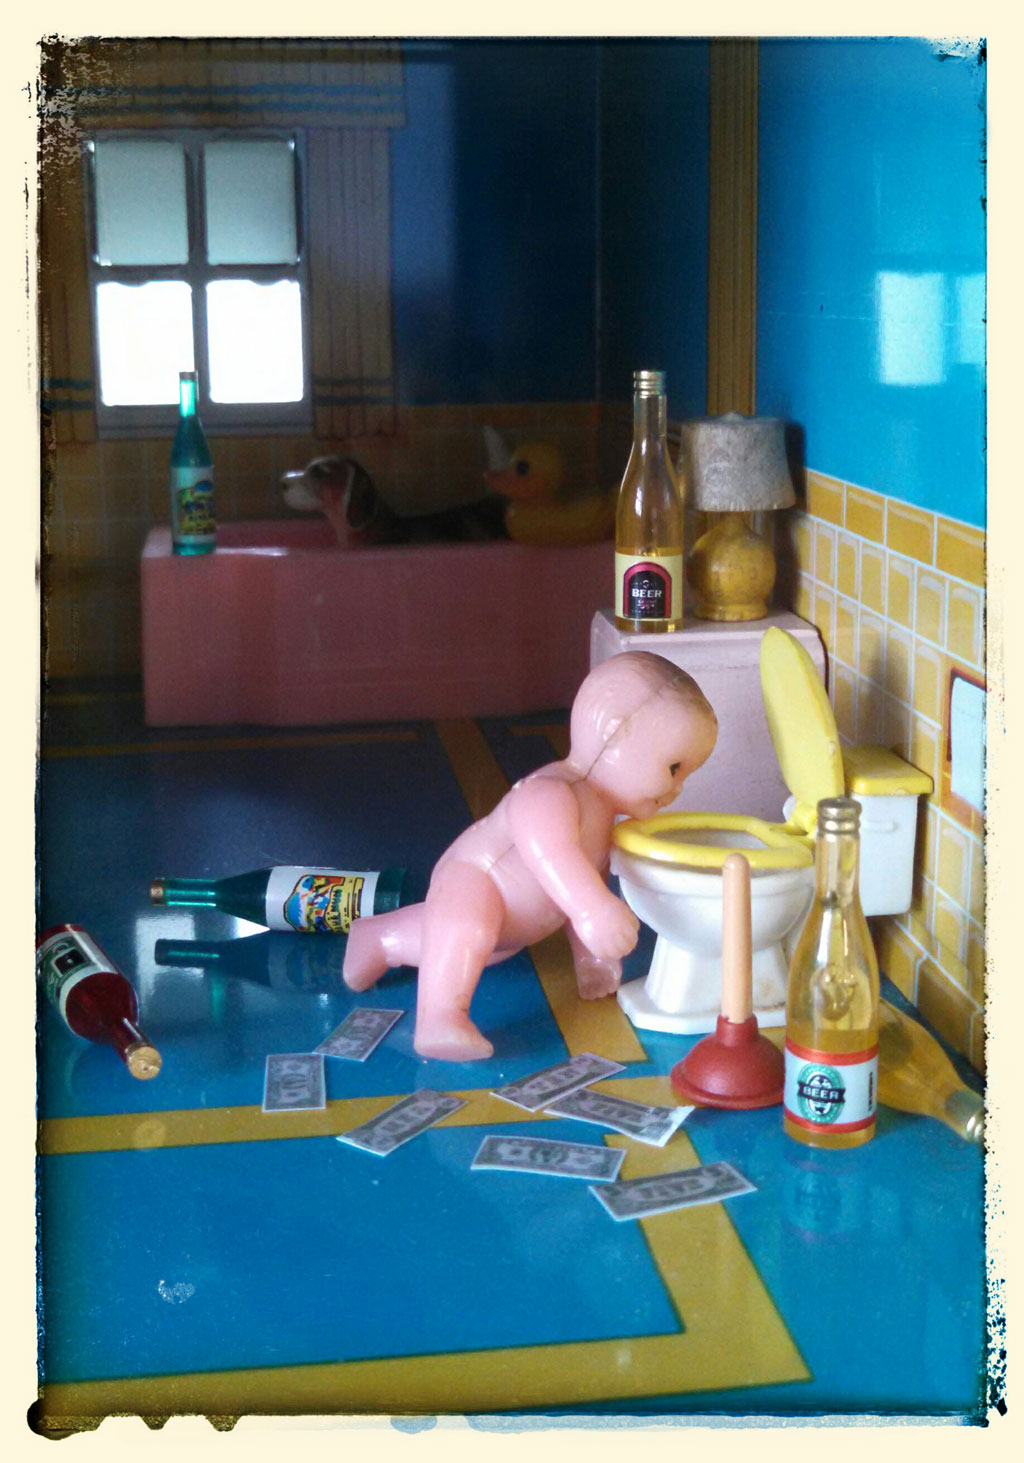 plastic toy baby in dollhouse bathroom